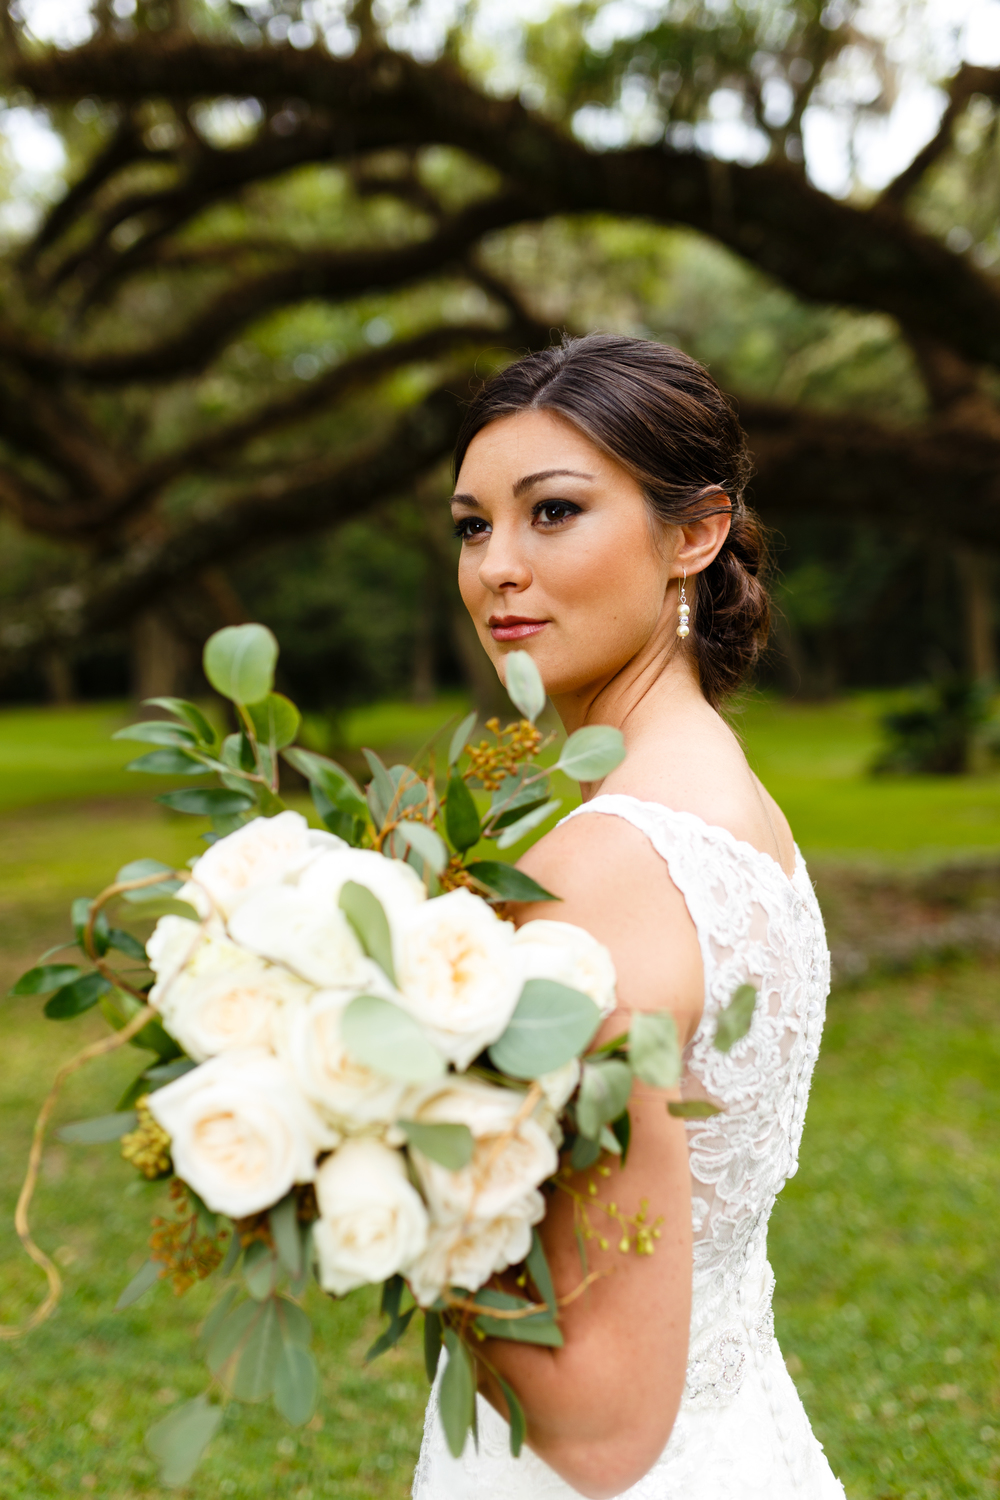 Bridal-wedding-portrait-lafayette-broussard-youngsville-photographer-1-2.jpg